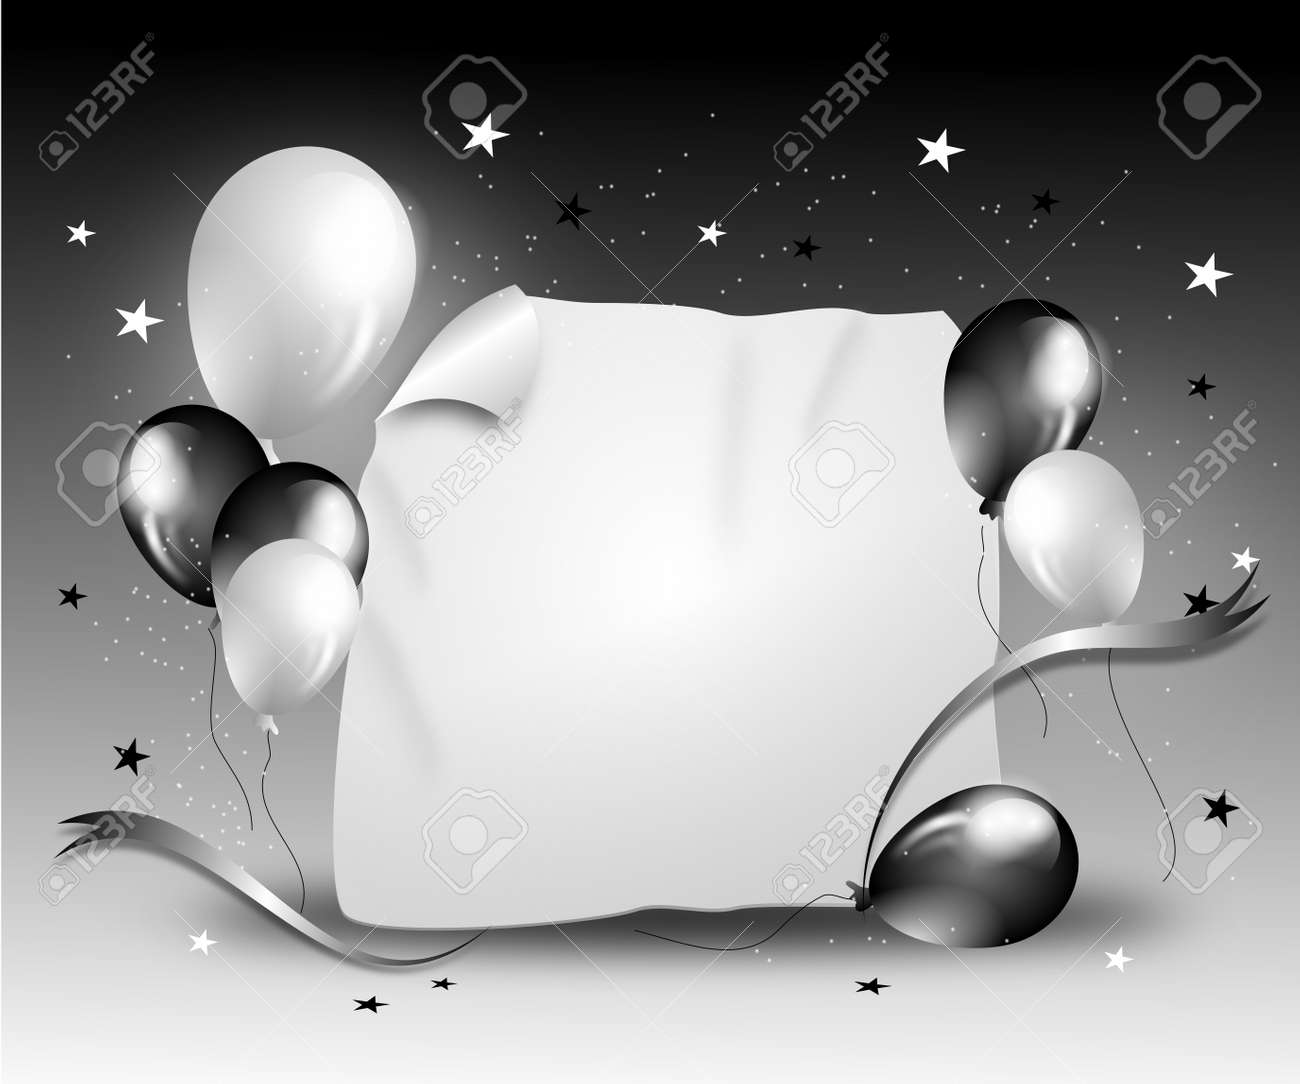 Party Background With Balloons And Ribbon In Black White Colors